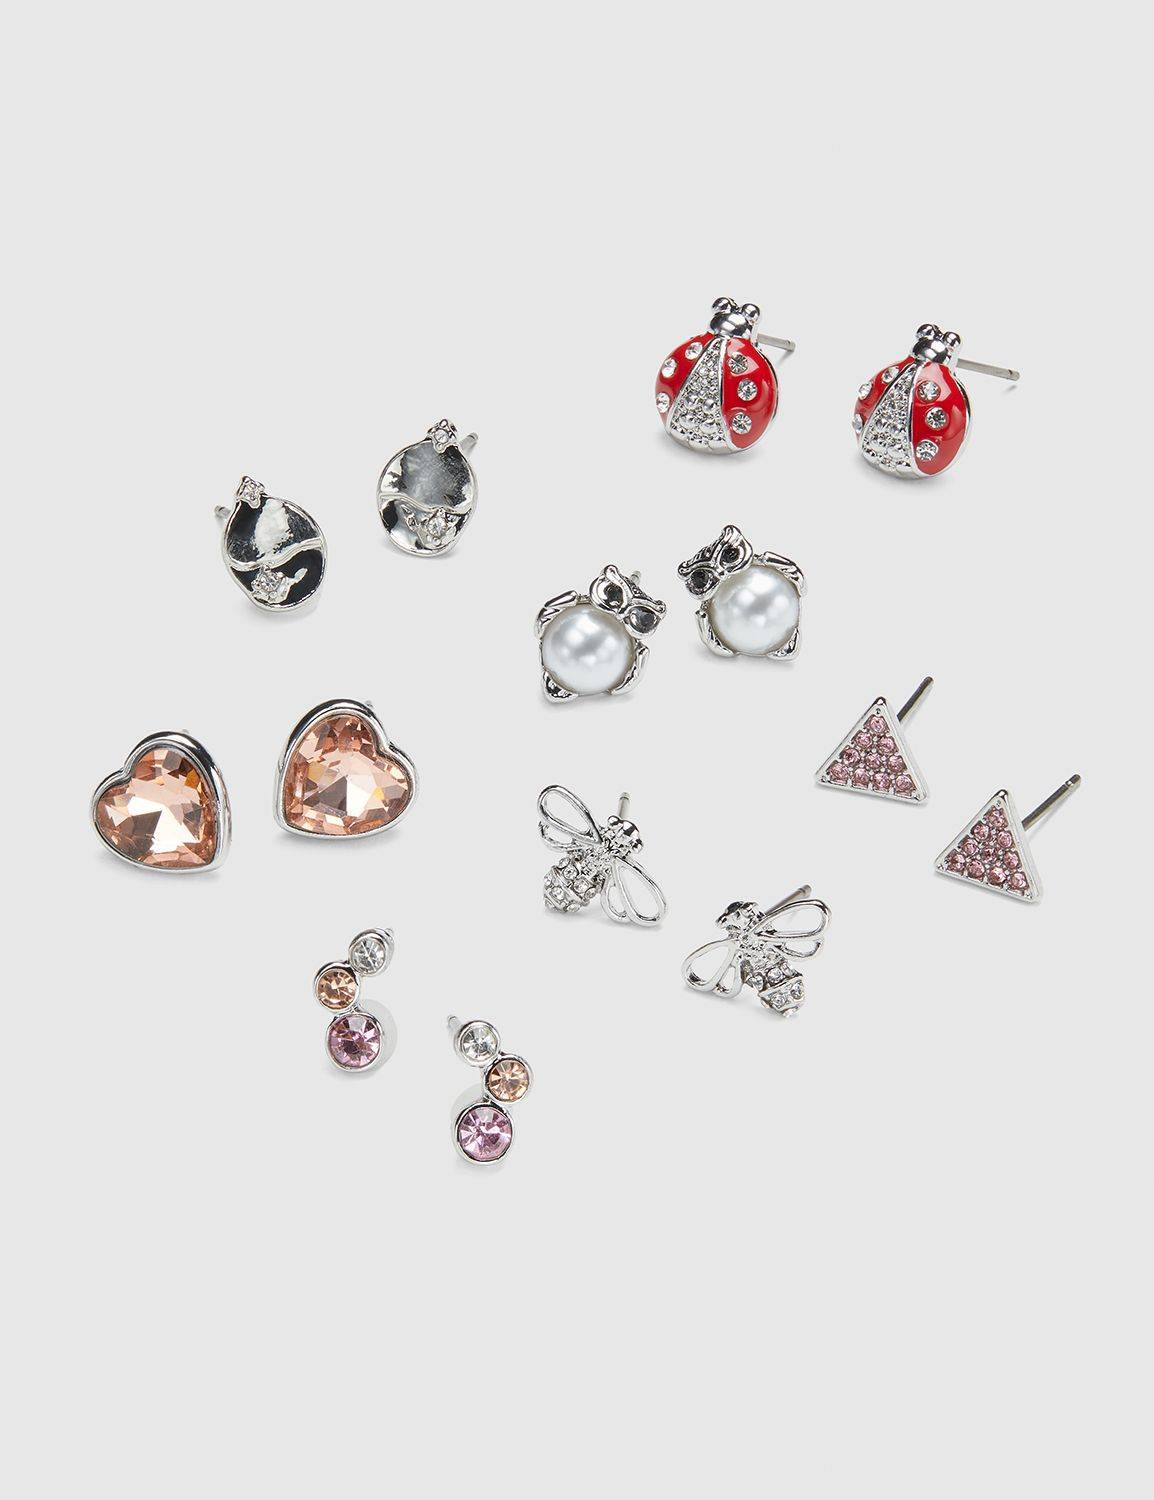 Lane Bryant Women's Stud Earrings - 7-Pack - Owl & Faceted Stones NO Silver Tone